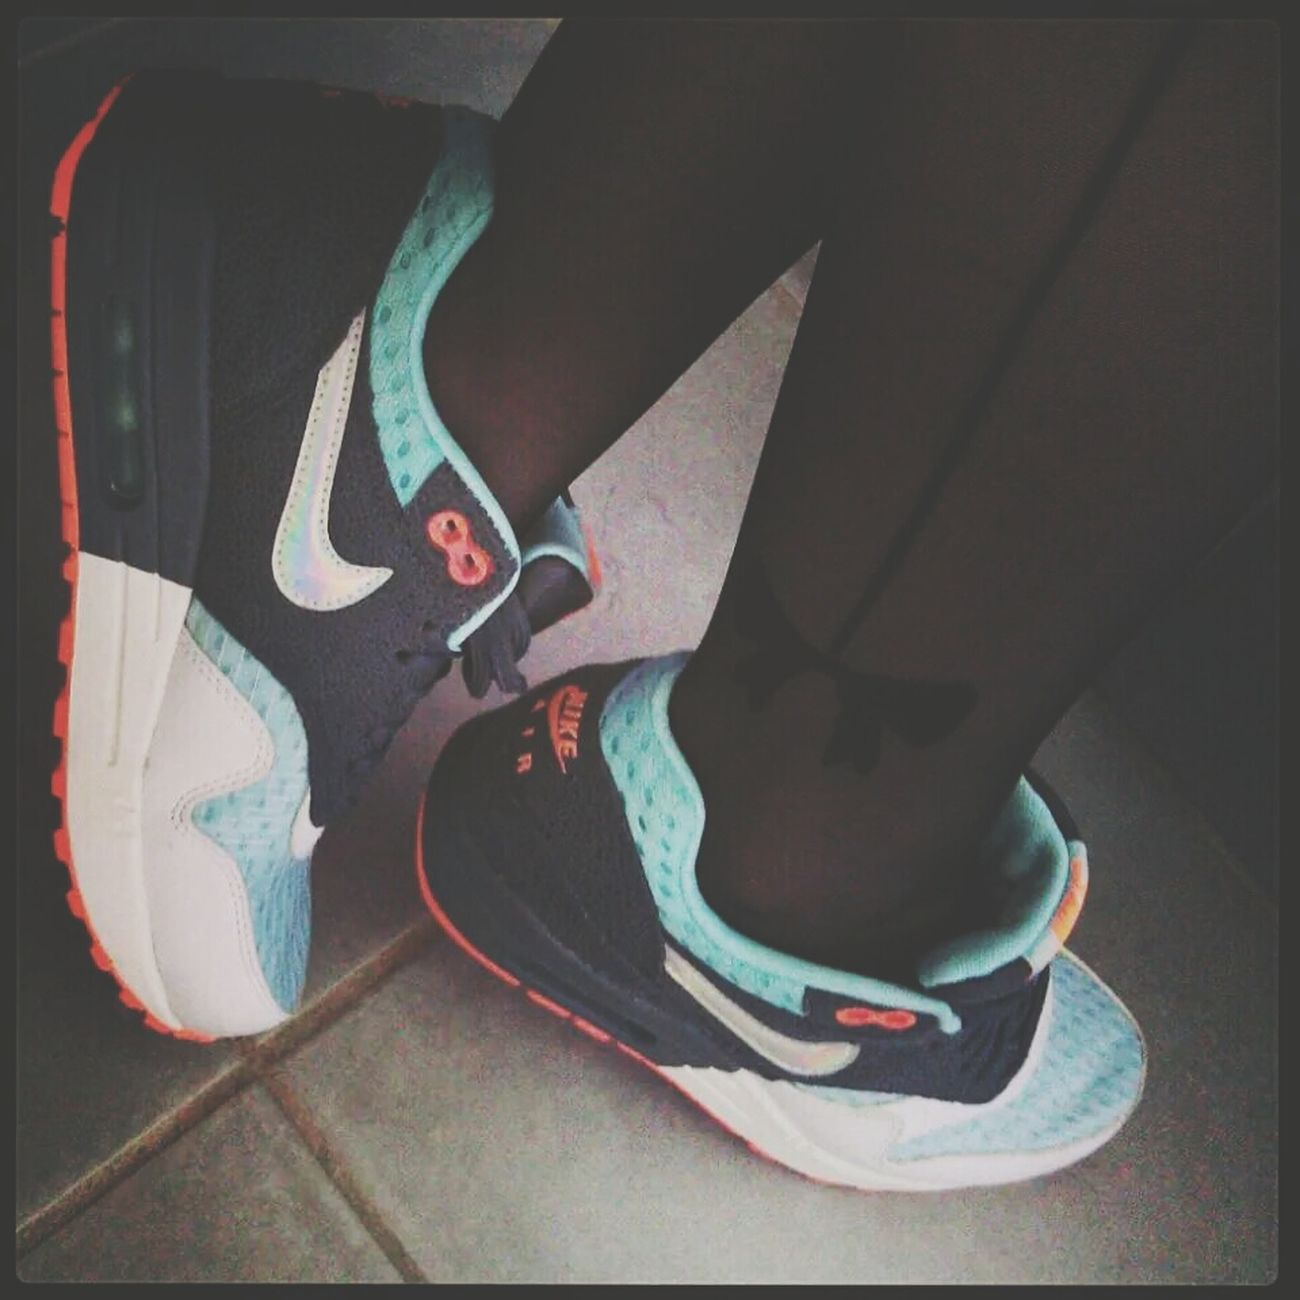 Air Max Nike✔ Sneakers Sneaker Addict